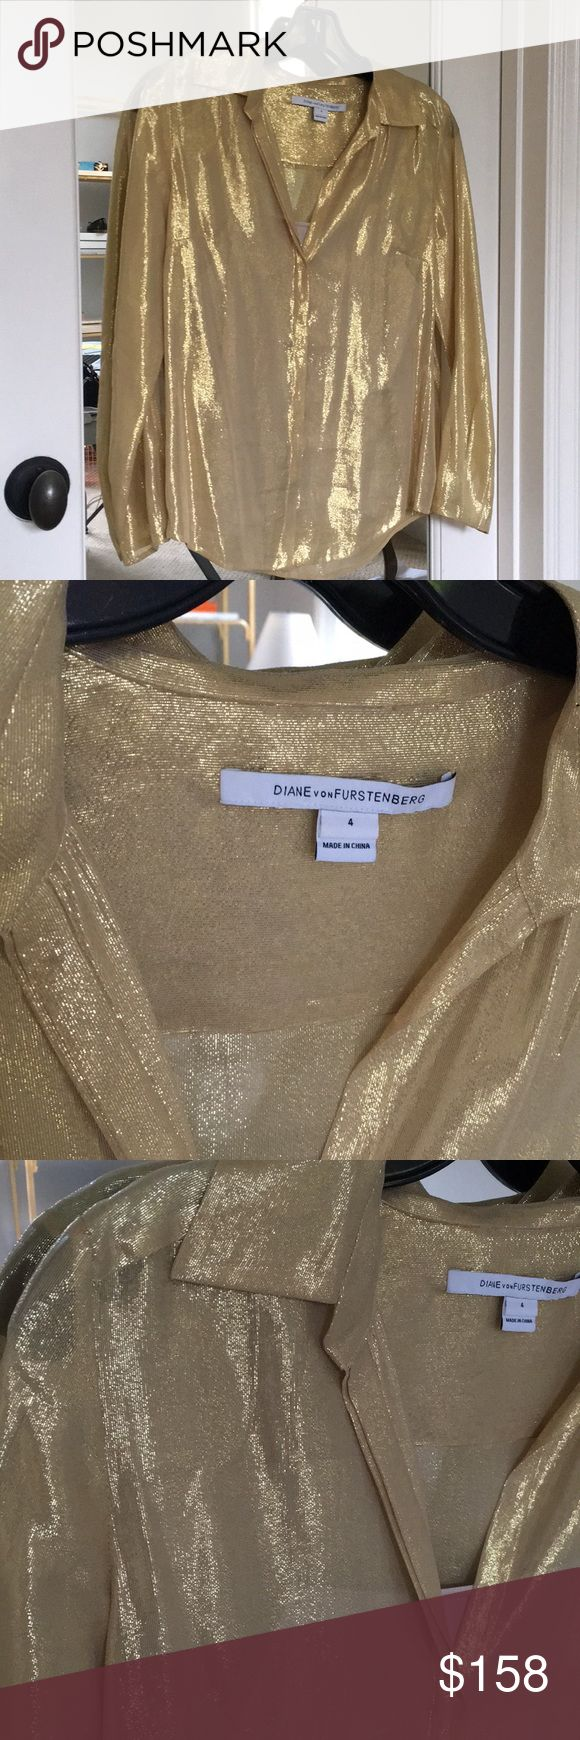 Diane von Furstenberg gold top Button down with a detachable nude cami. 70% silk, 30% metallic. Shoulder to shoulder is 15 inches, length of sleeve is 22 inches, armpit to armpit is 19 inches and from shoulder to hem is 24 inches. Diane Von Furstenberg Tops Button Down Shirts